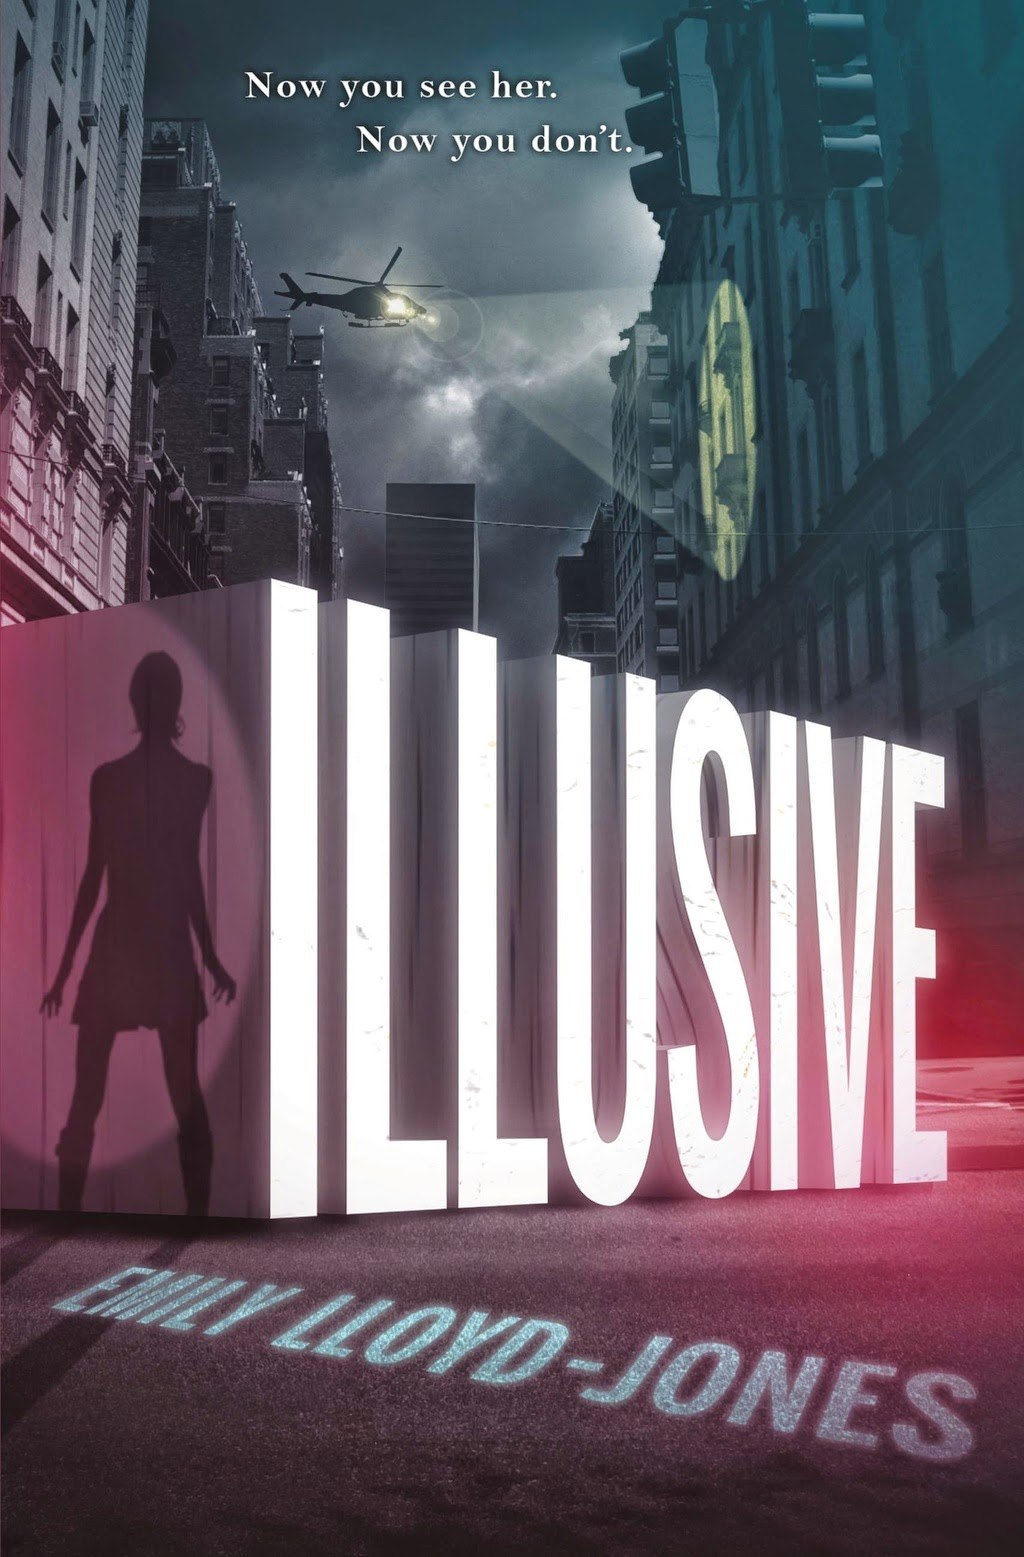 illusive by emily lloyd-jones book cover